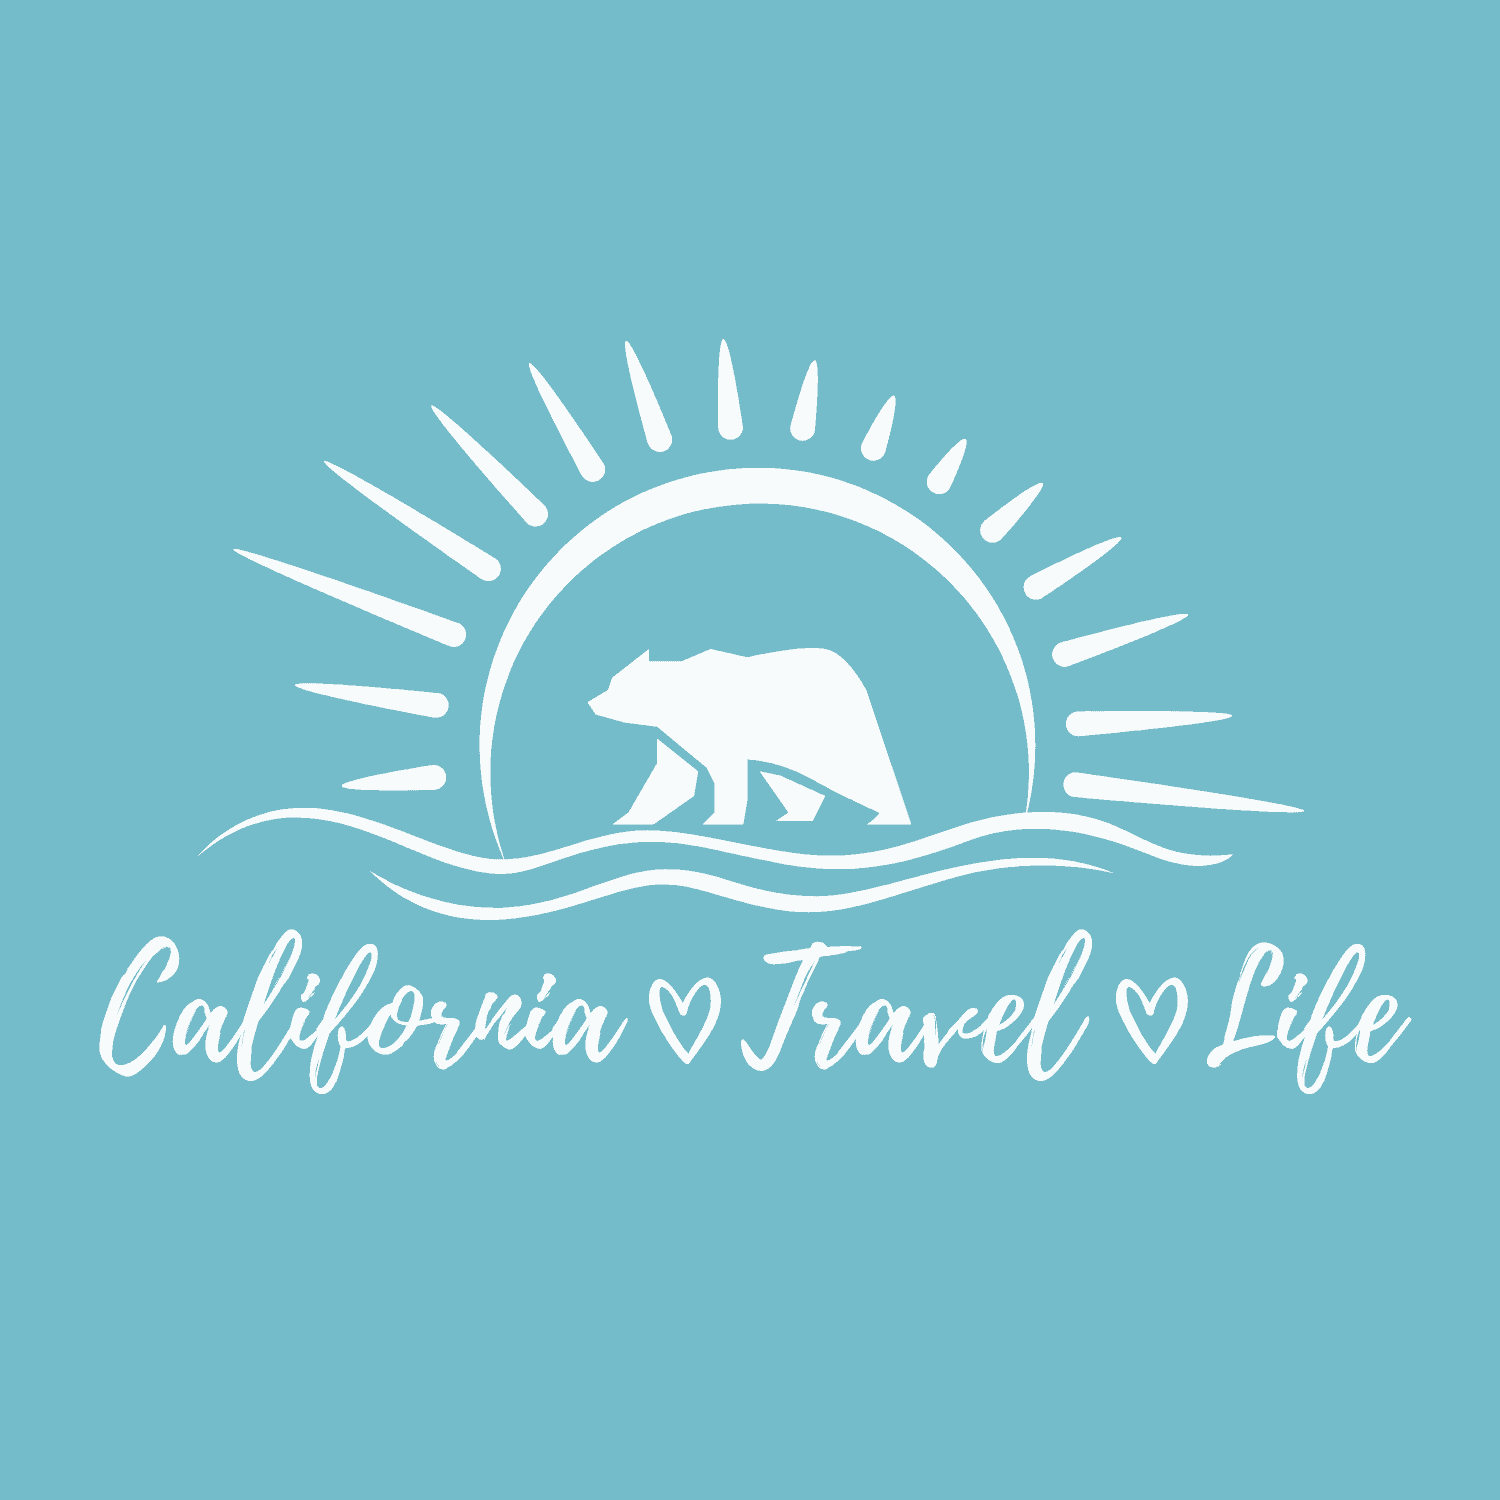 California Travel Life